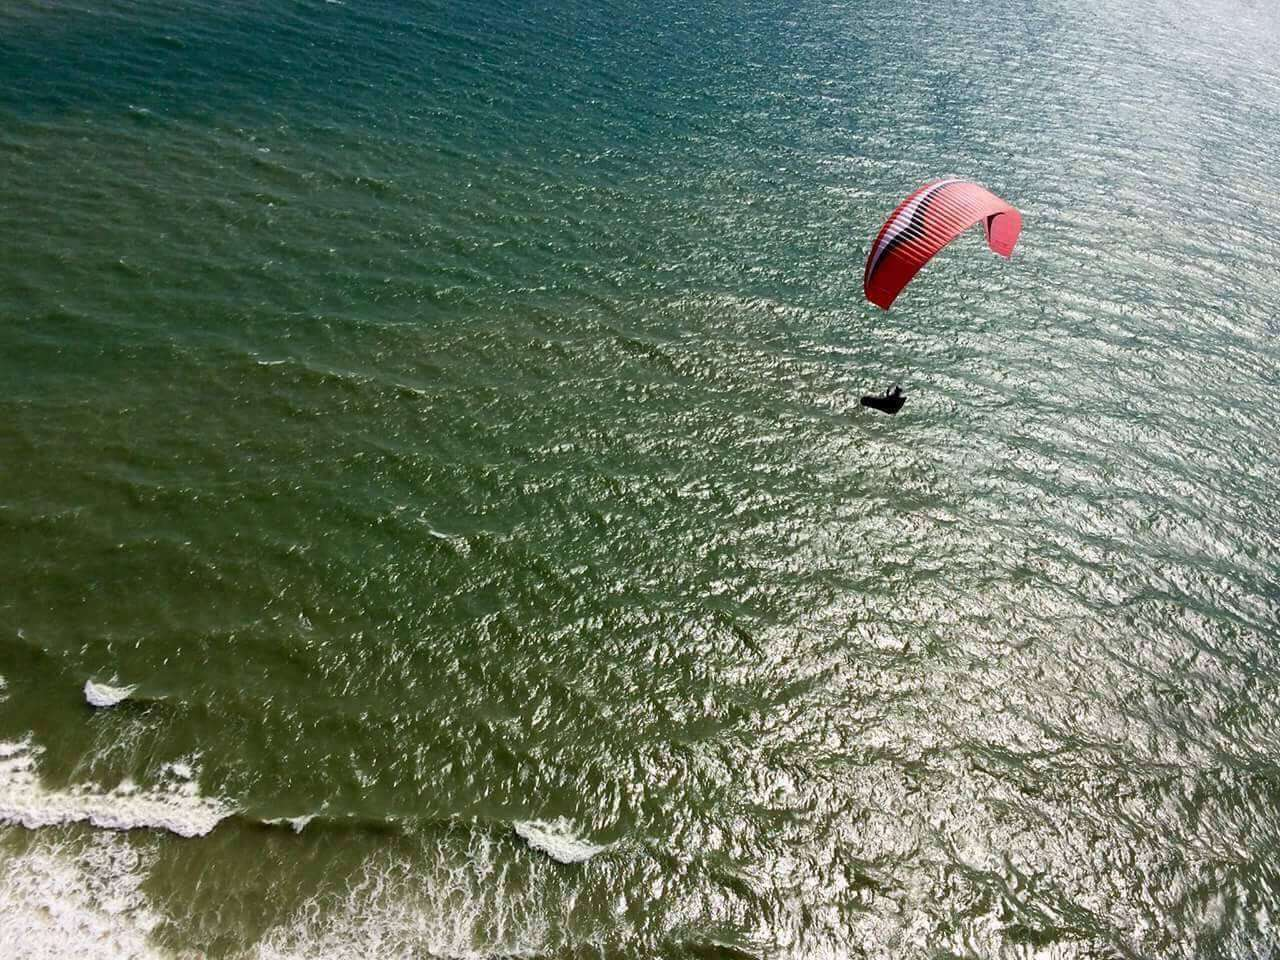 what type of paragliding will you be doing?